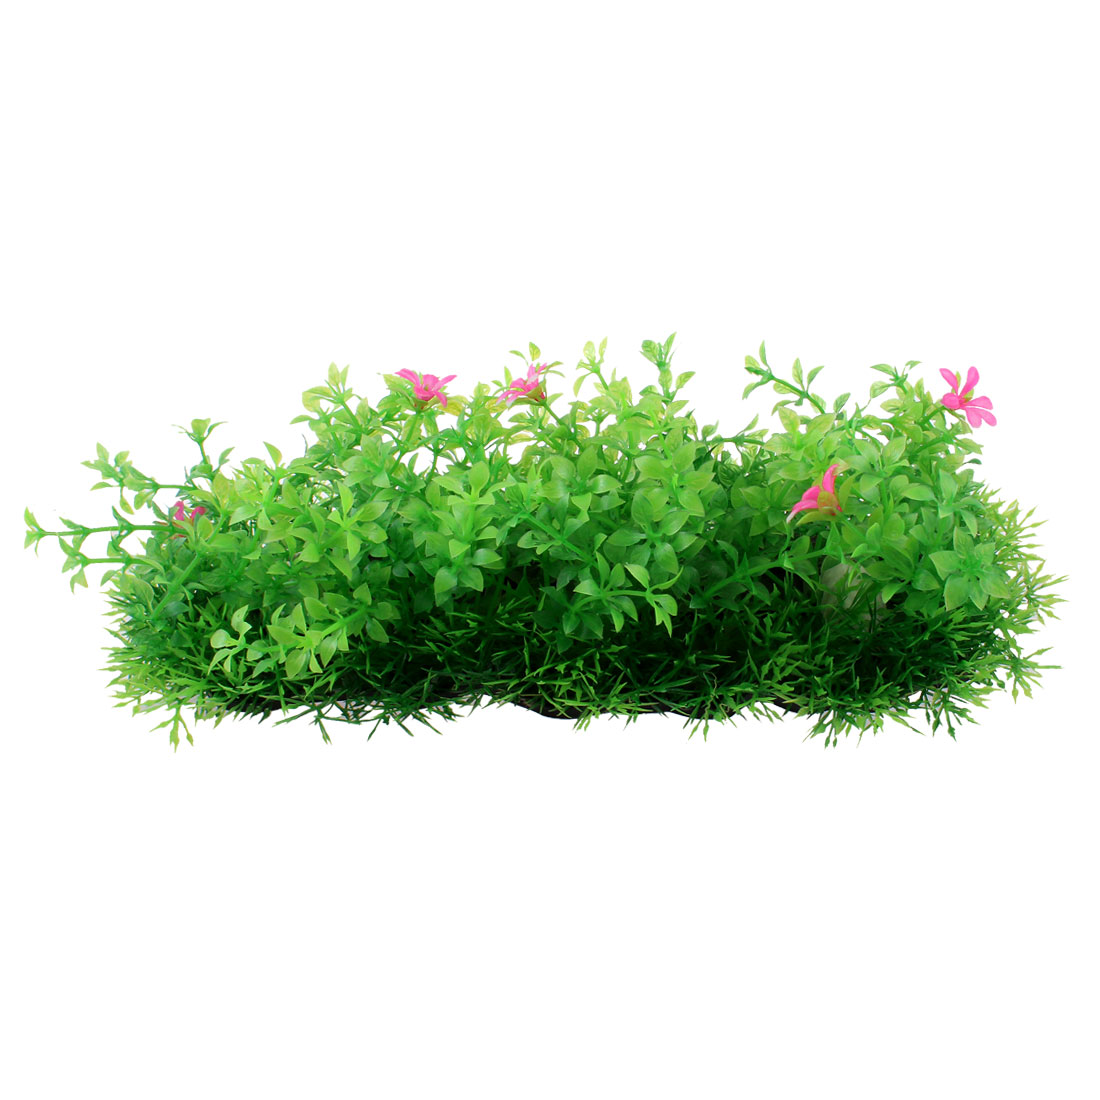 Aquarium Fishtank Decoration Green Plastic Underwater Plant Lawn